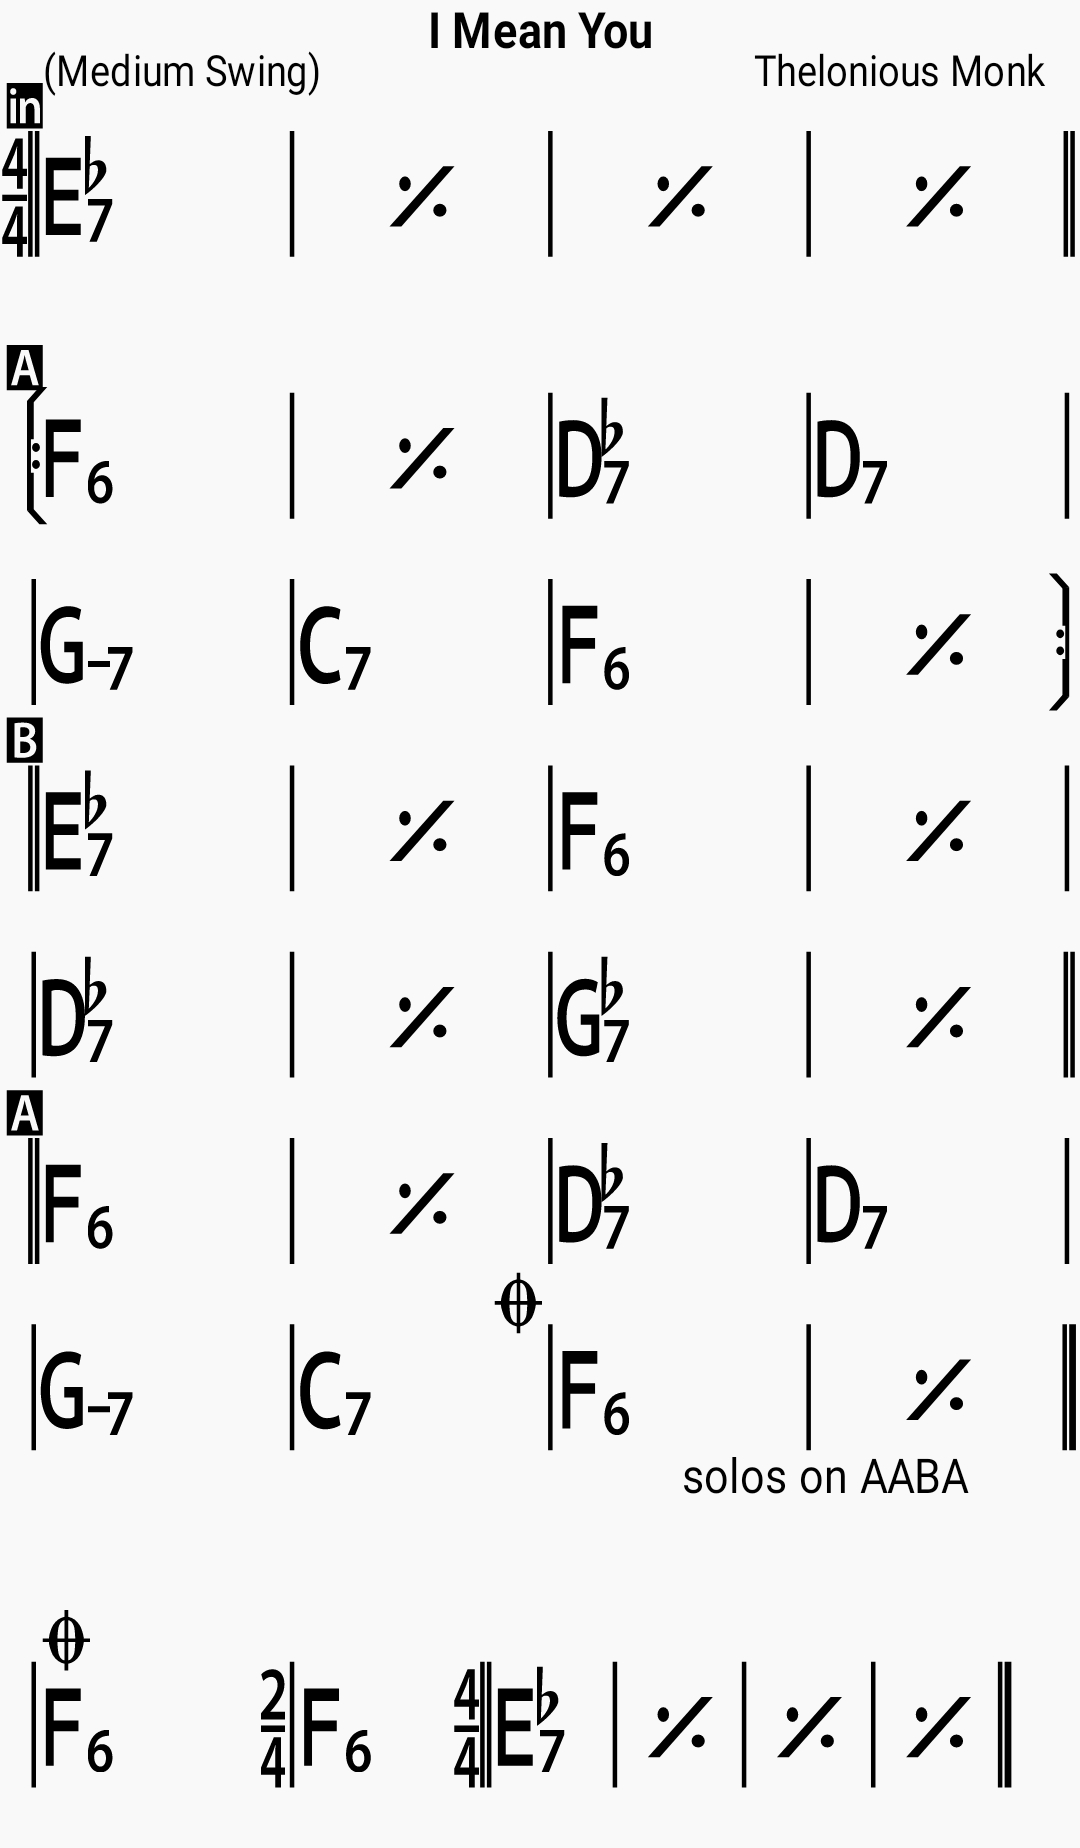 Chord chart for the jazz standard I Mean You